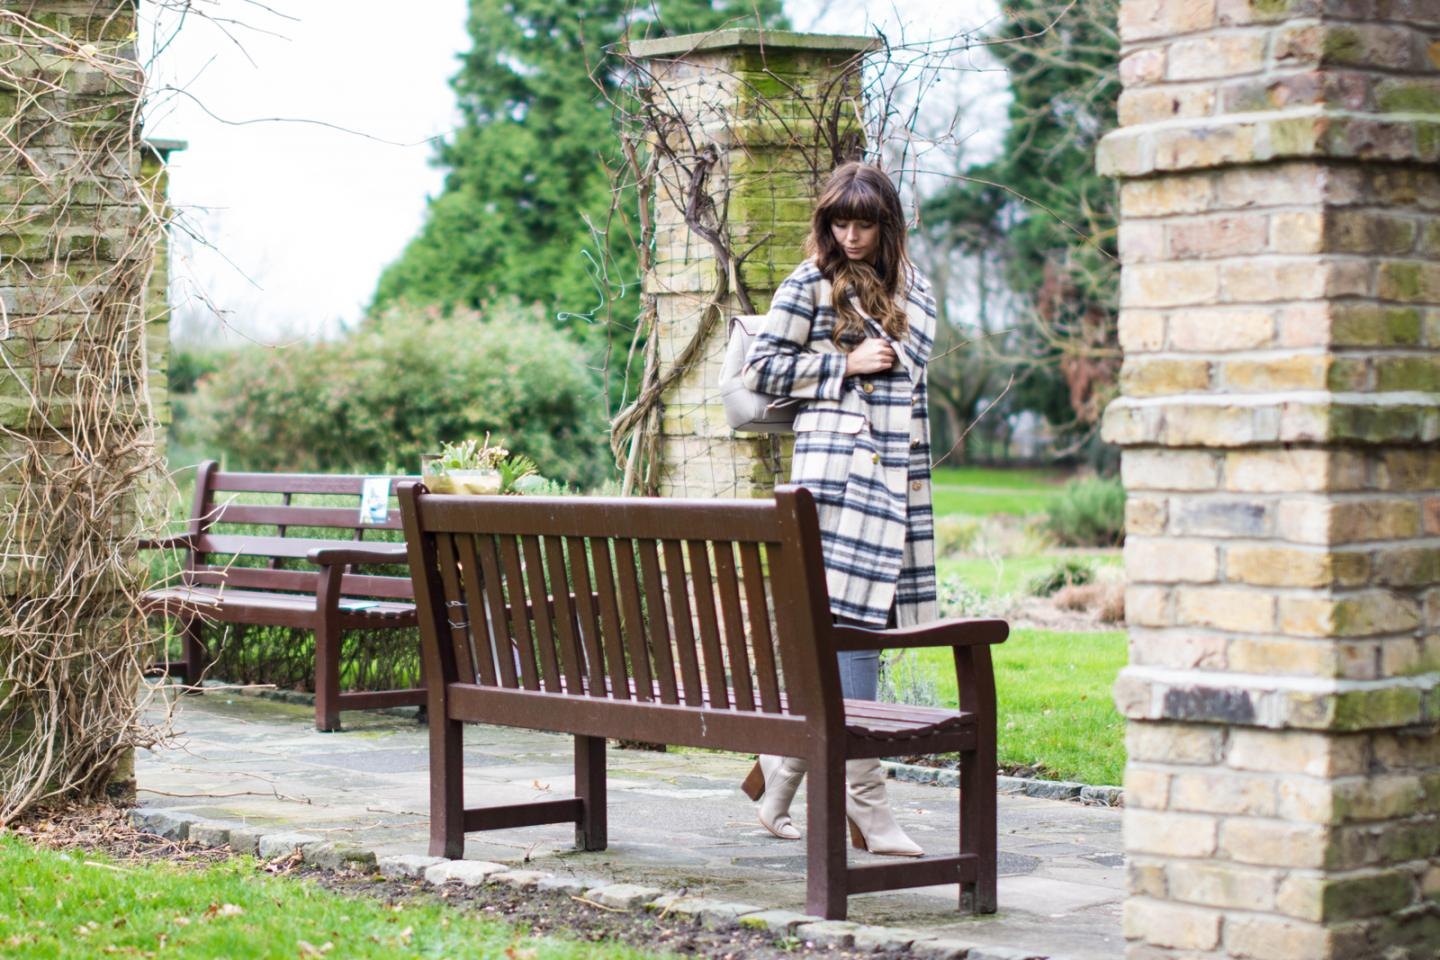 EJSTYLE - River Island brushed check coat, grey skinny jeans, Winter OOTD outfit, grey rucksack backpack